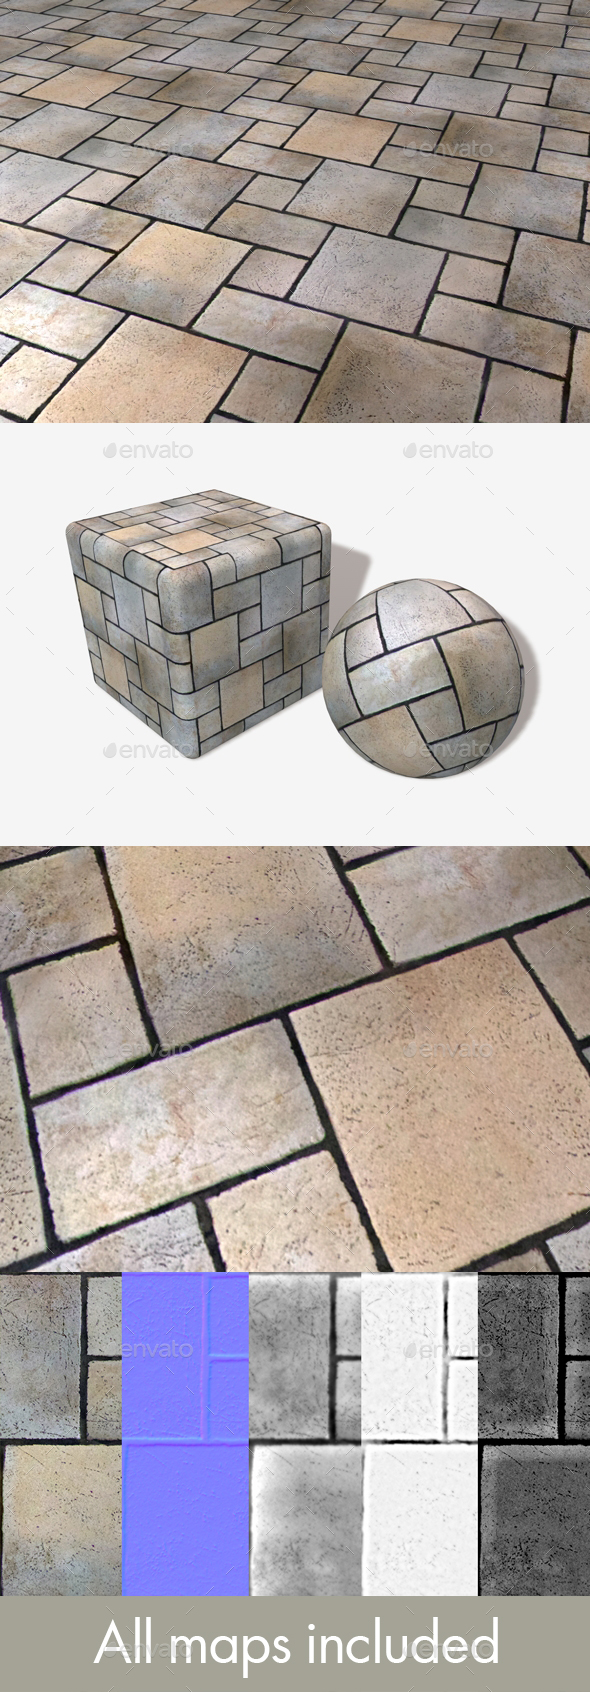 Restaurant Floor Tile Seamless Texture - 3DOcean Item for Sale